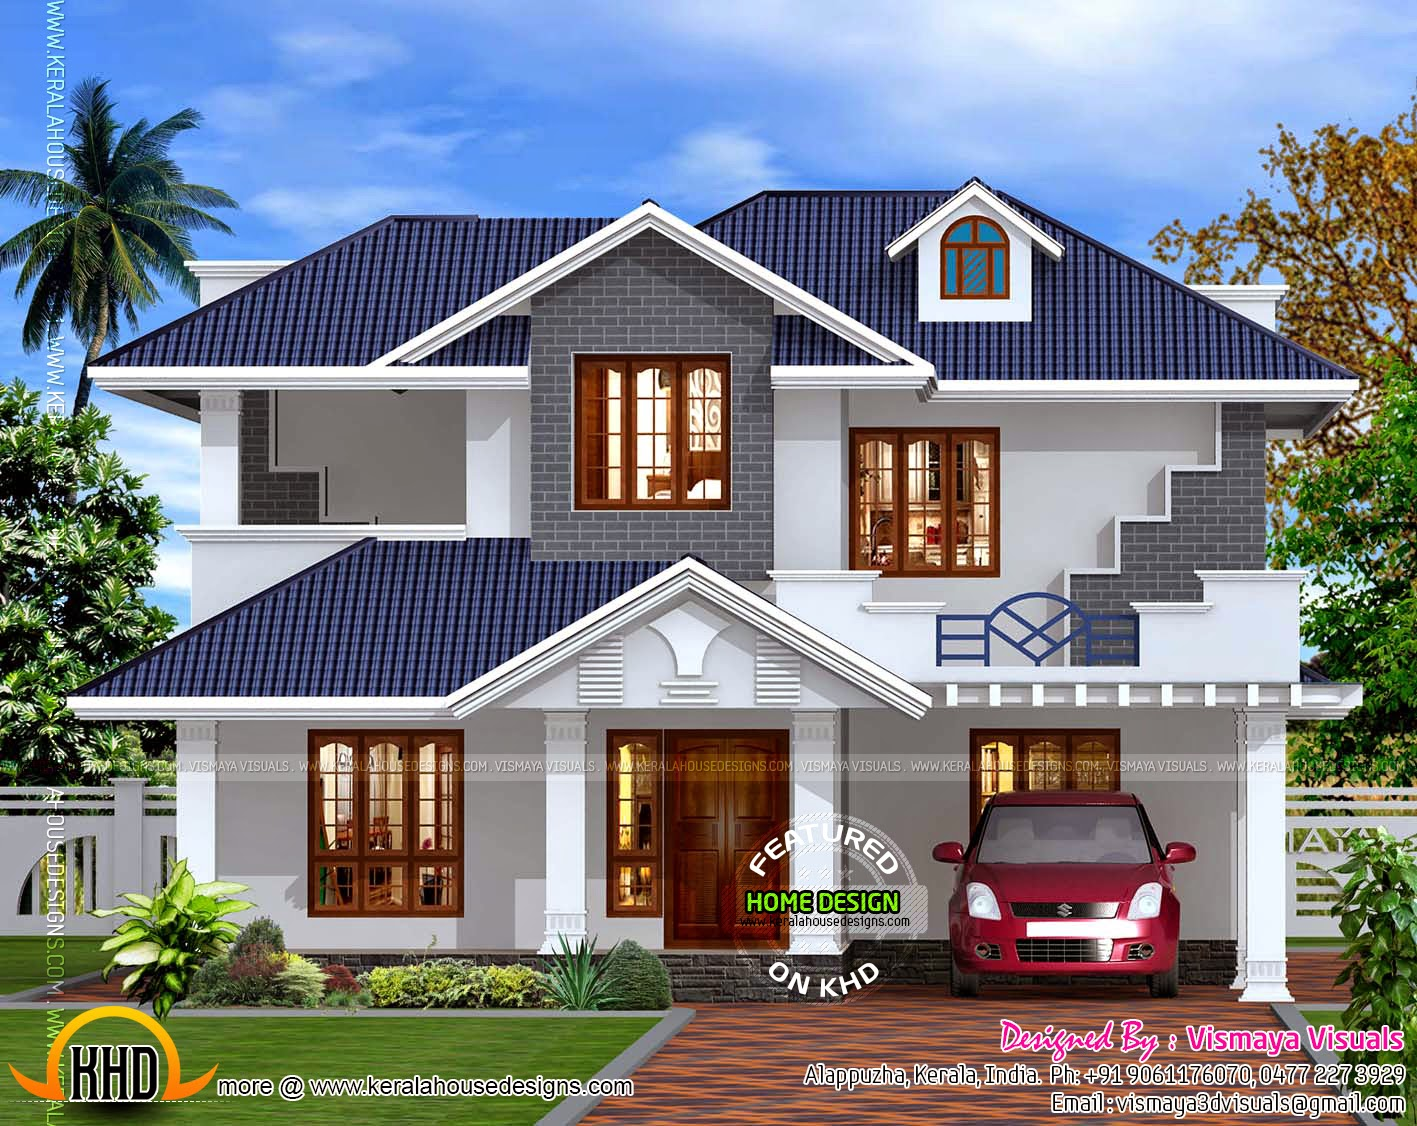 Kerala style villa exterior home design simple for Kerala style villa plans